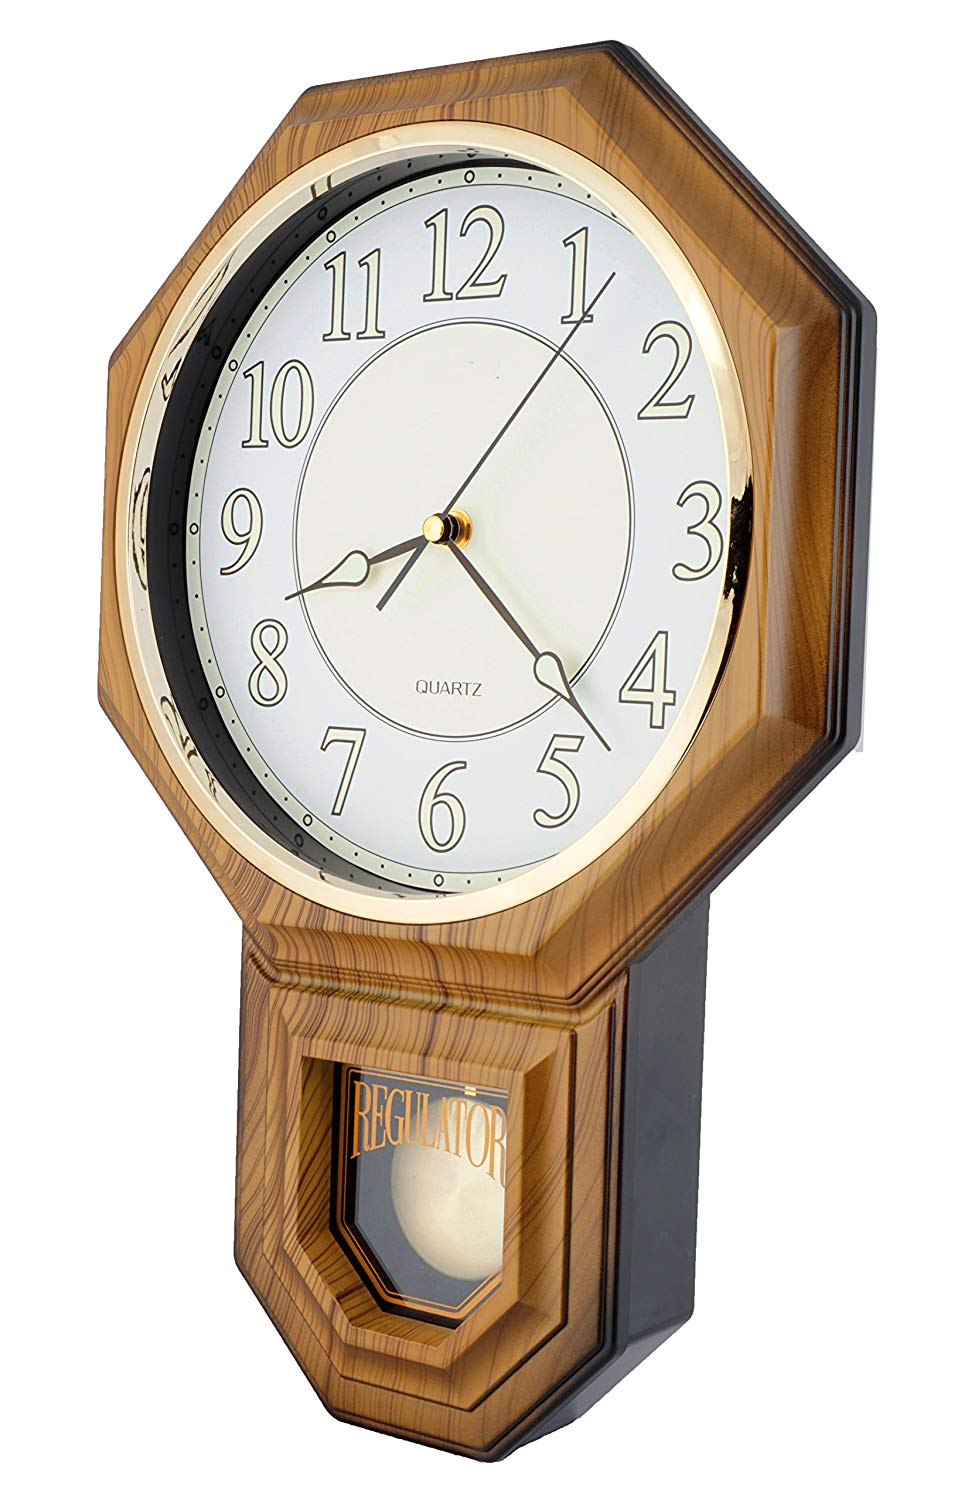 amazon com justime traditional schoolhouse pendulum luminous wall clock chimes hourly with westminster melody made in taiwan pp0258 l lw light wood